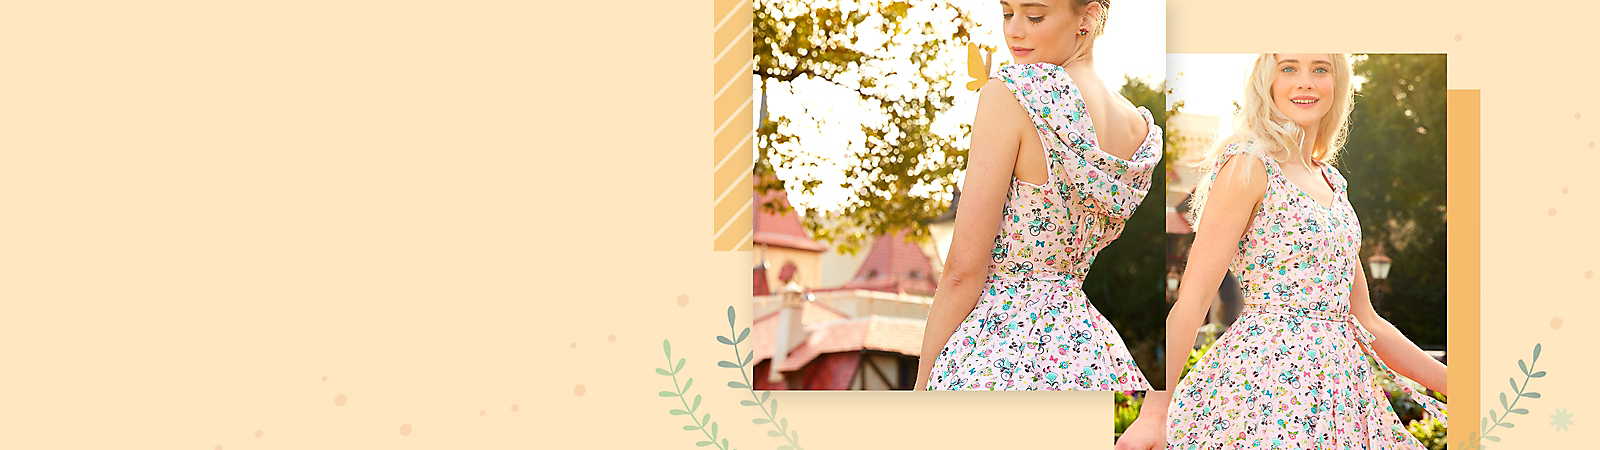 Background image of Women's Dresses & Skirts